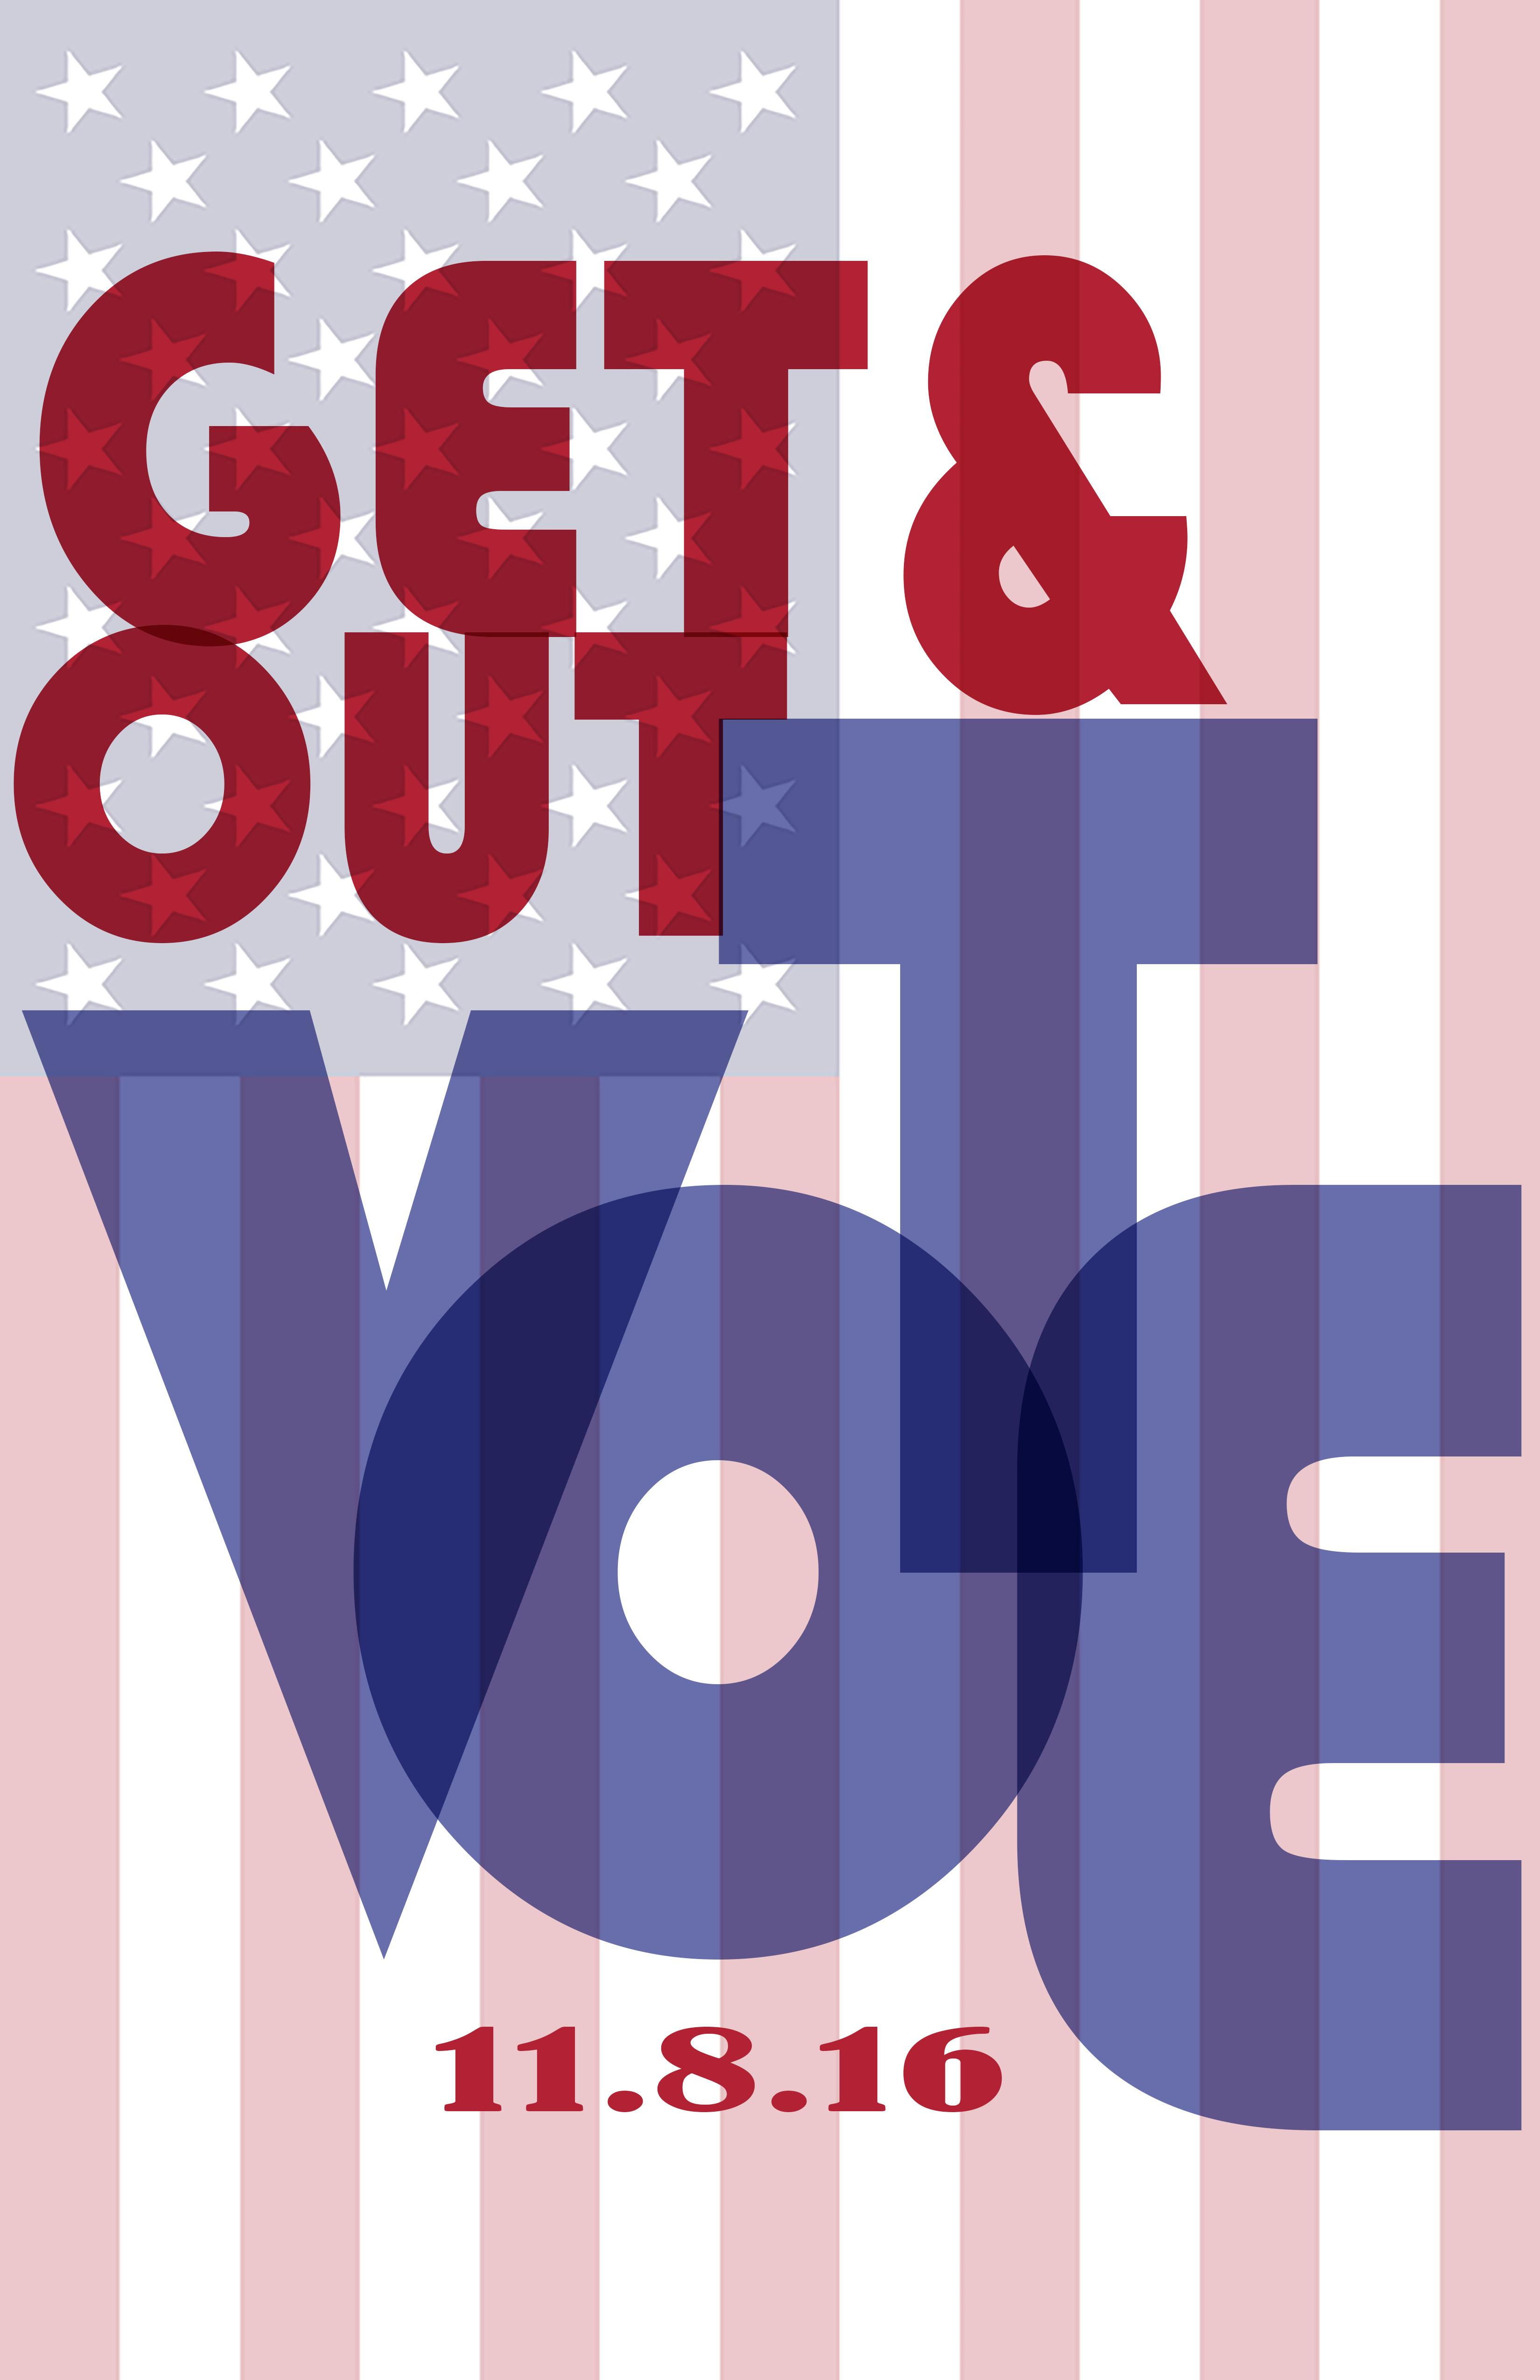 Poster design for students - Students Were Charged With Finding The Type To Include On Their Posters And With The Creating The Focus Of Their Poster Get Out The Vote Statistics